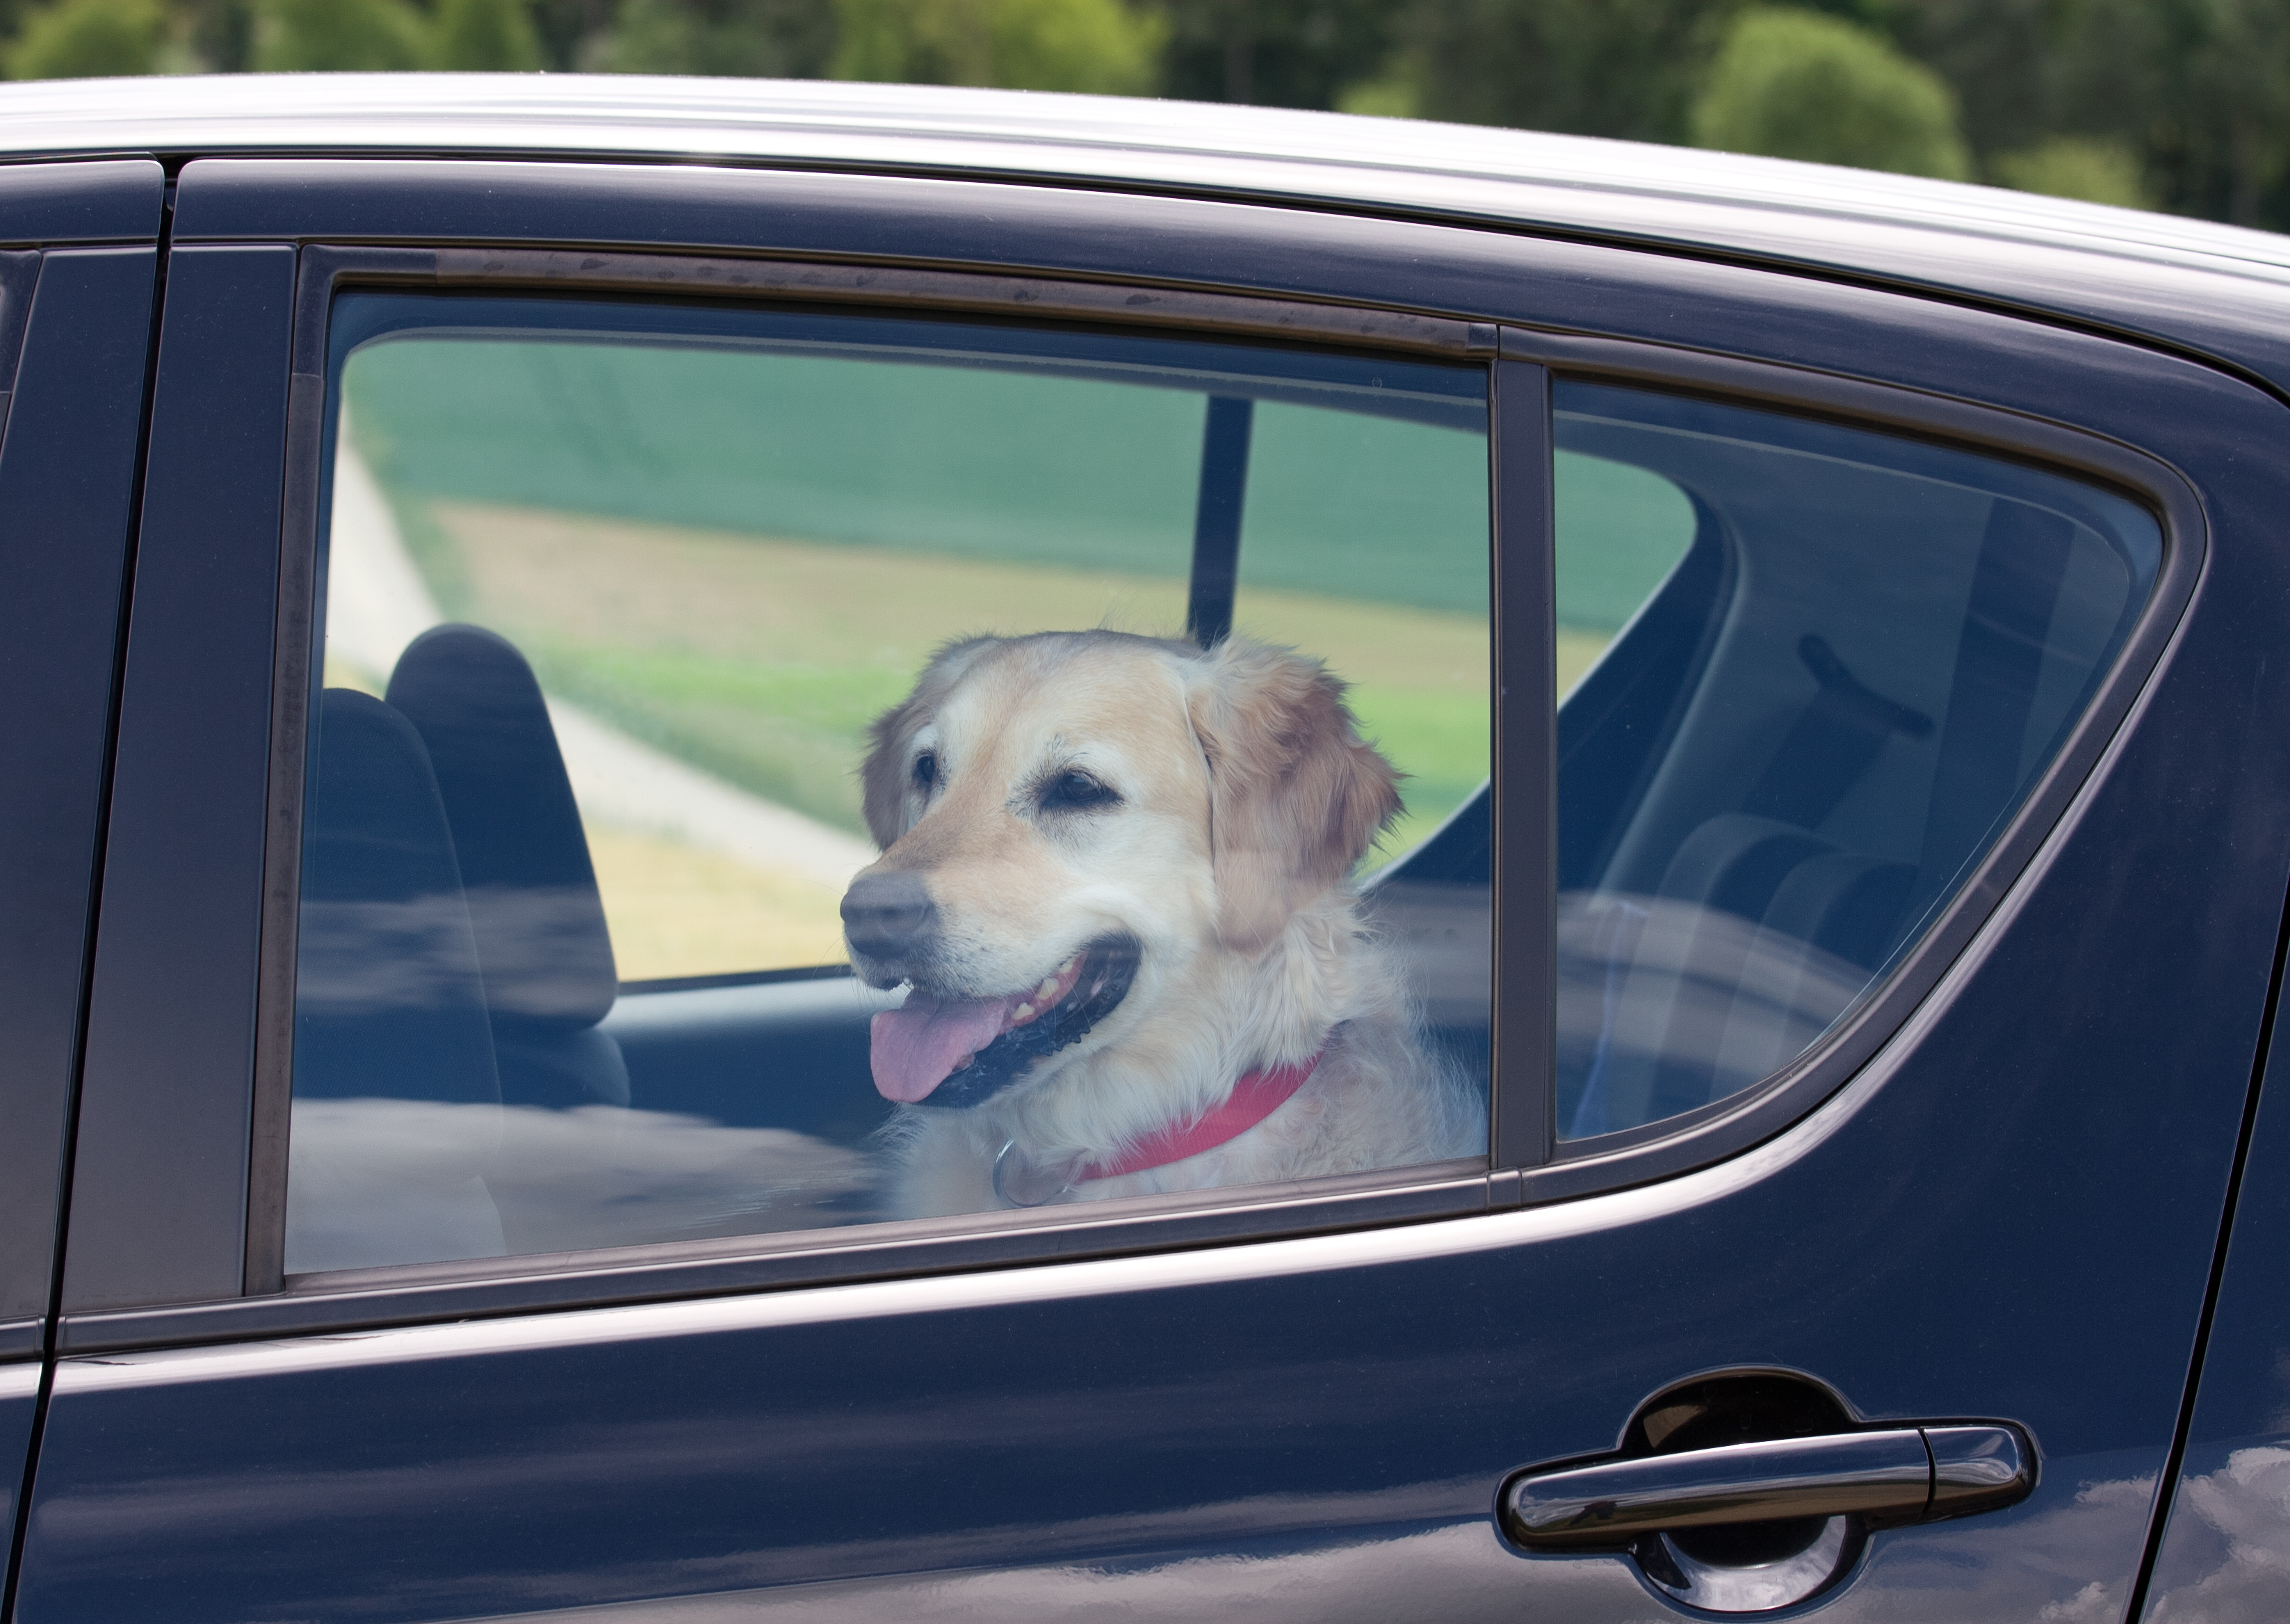 Dog sitting in the back seat of a black car